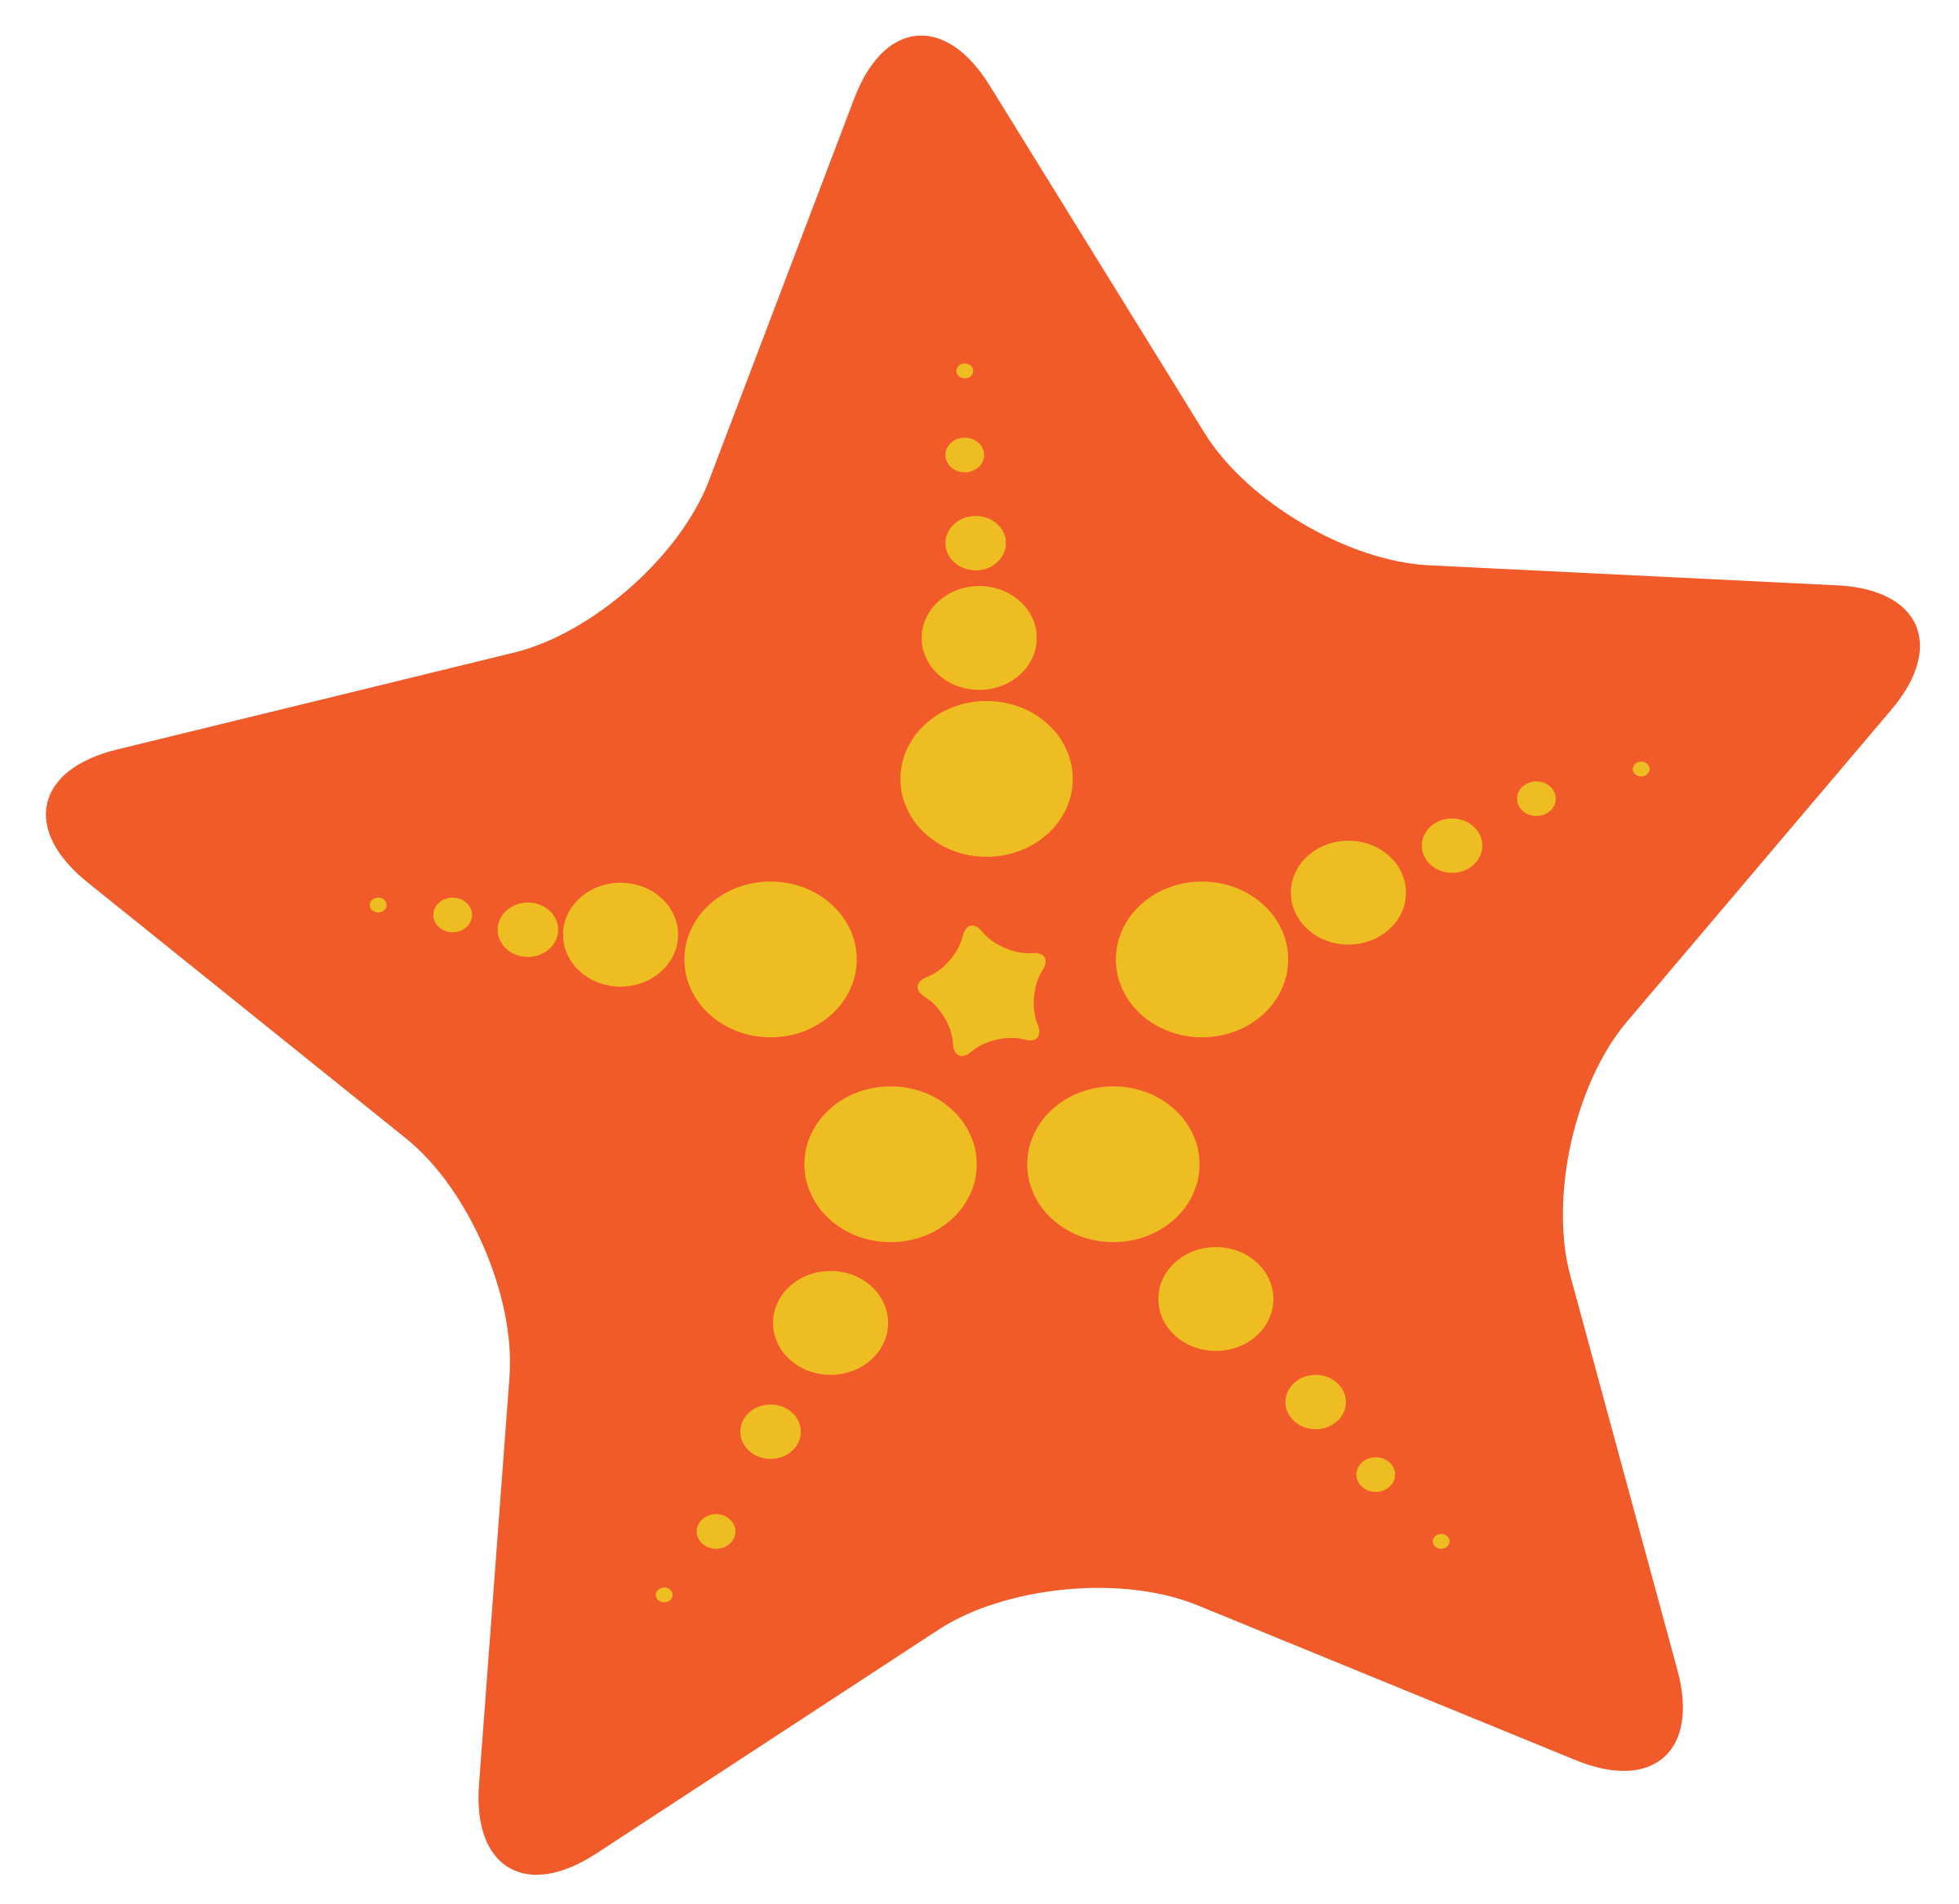 Starfish clipart #7, Download drawings